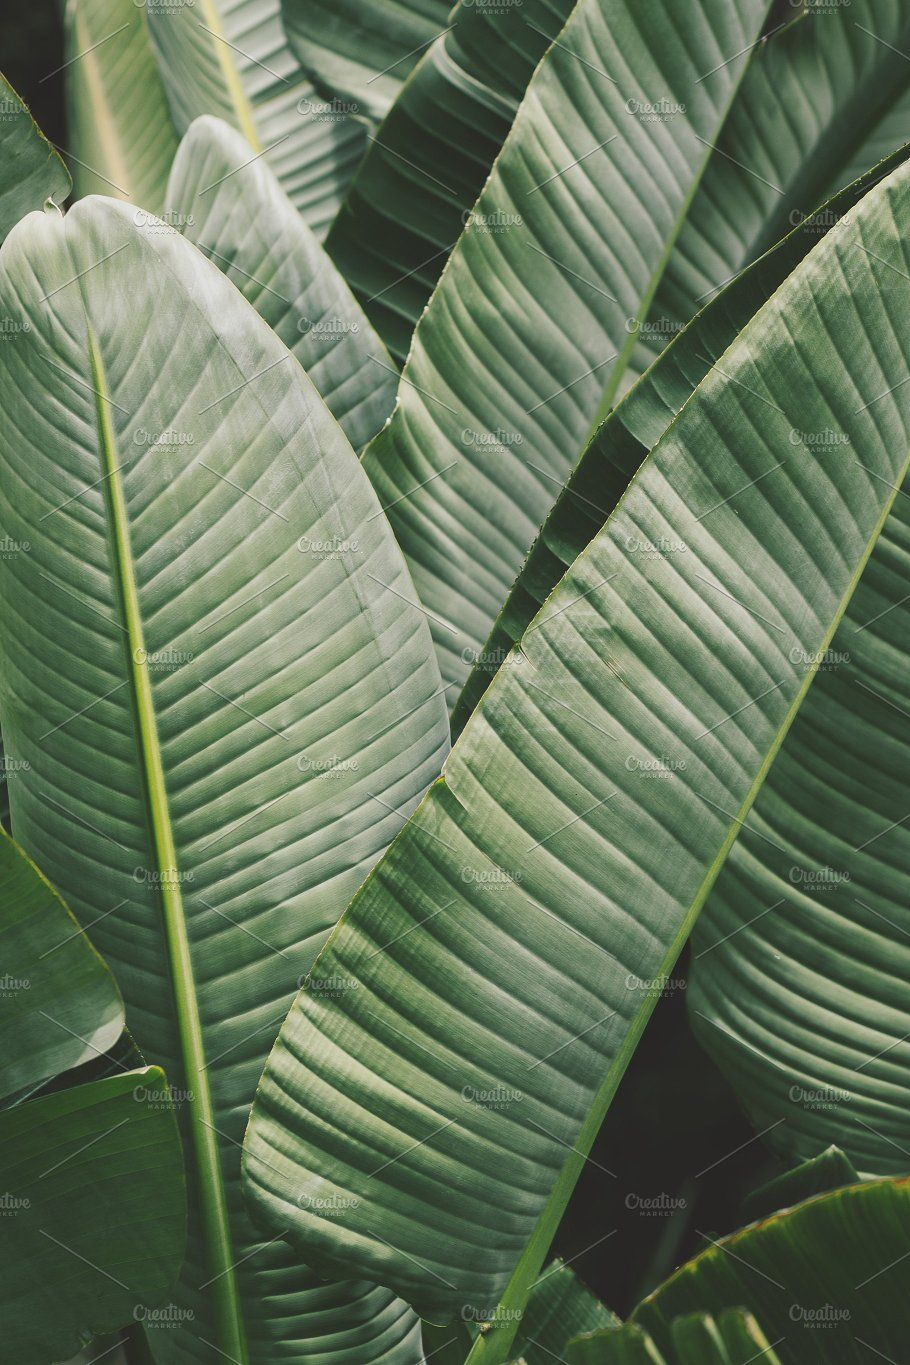 Lush Tropical Banana Leaves By Rene Jordaan Photography